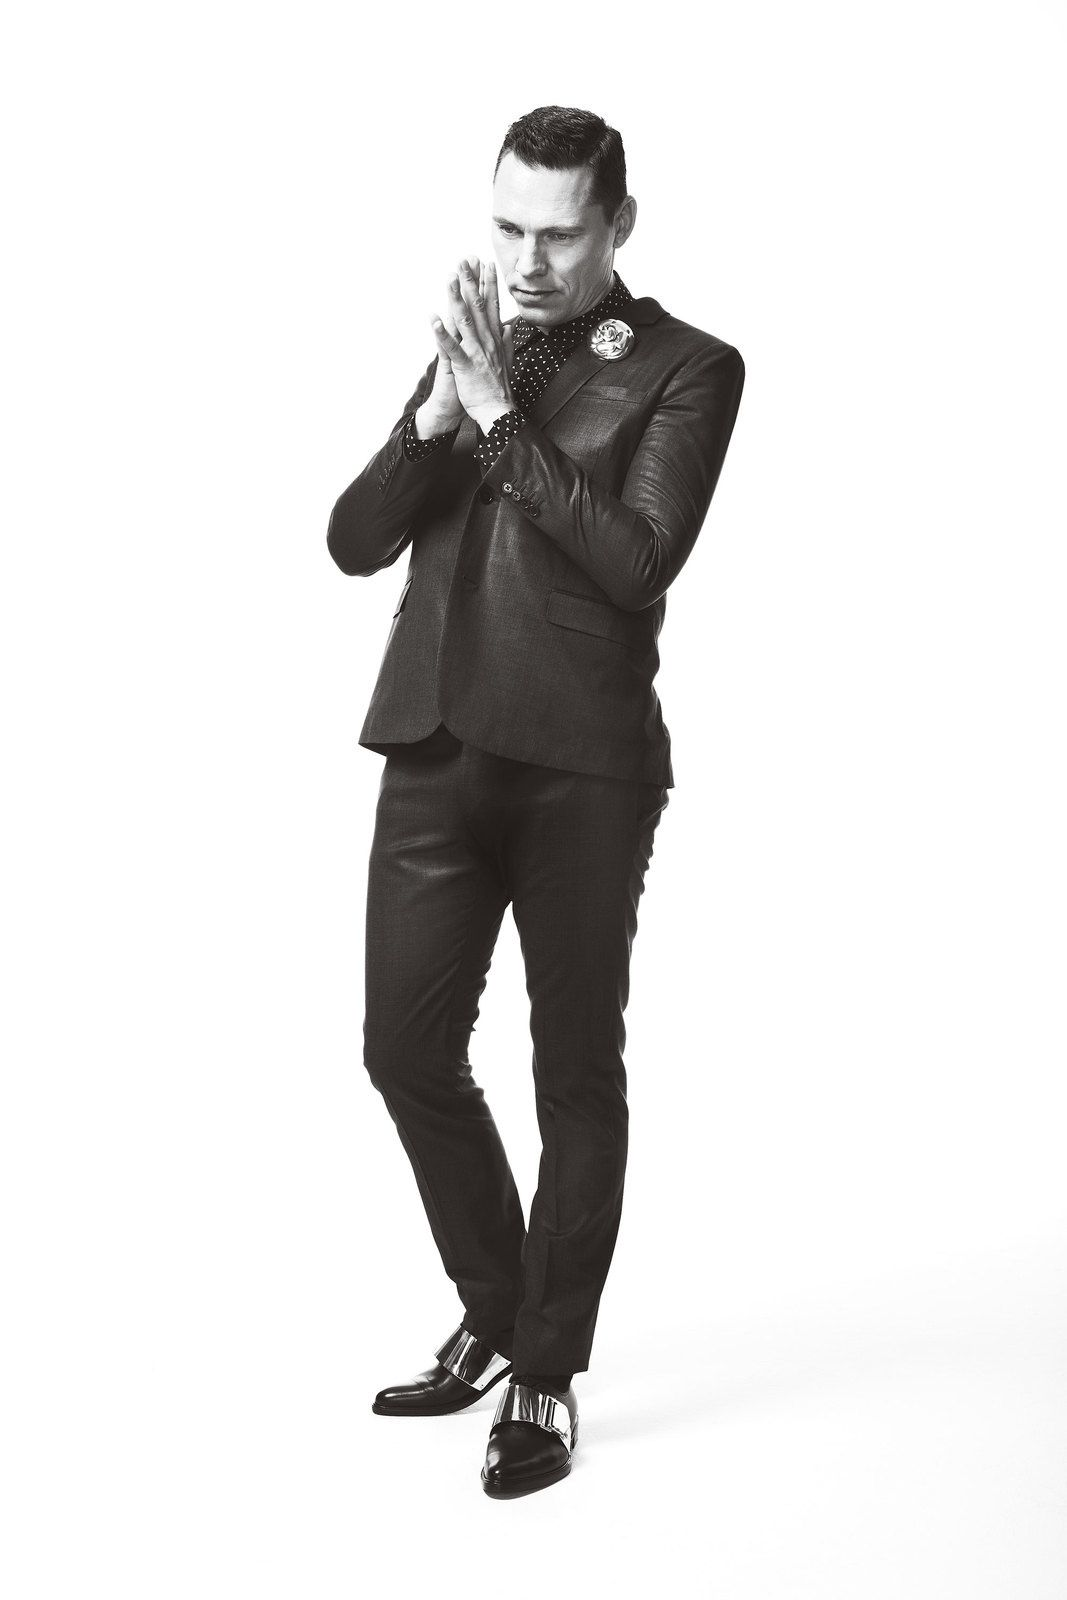 Tiësto wears a suit and shirt by Saint Laurent, pin by Chanel and shoes by Givenchy.